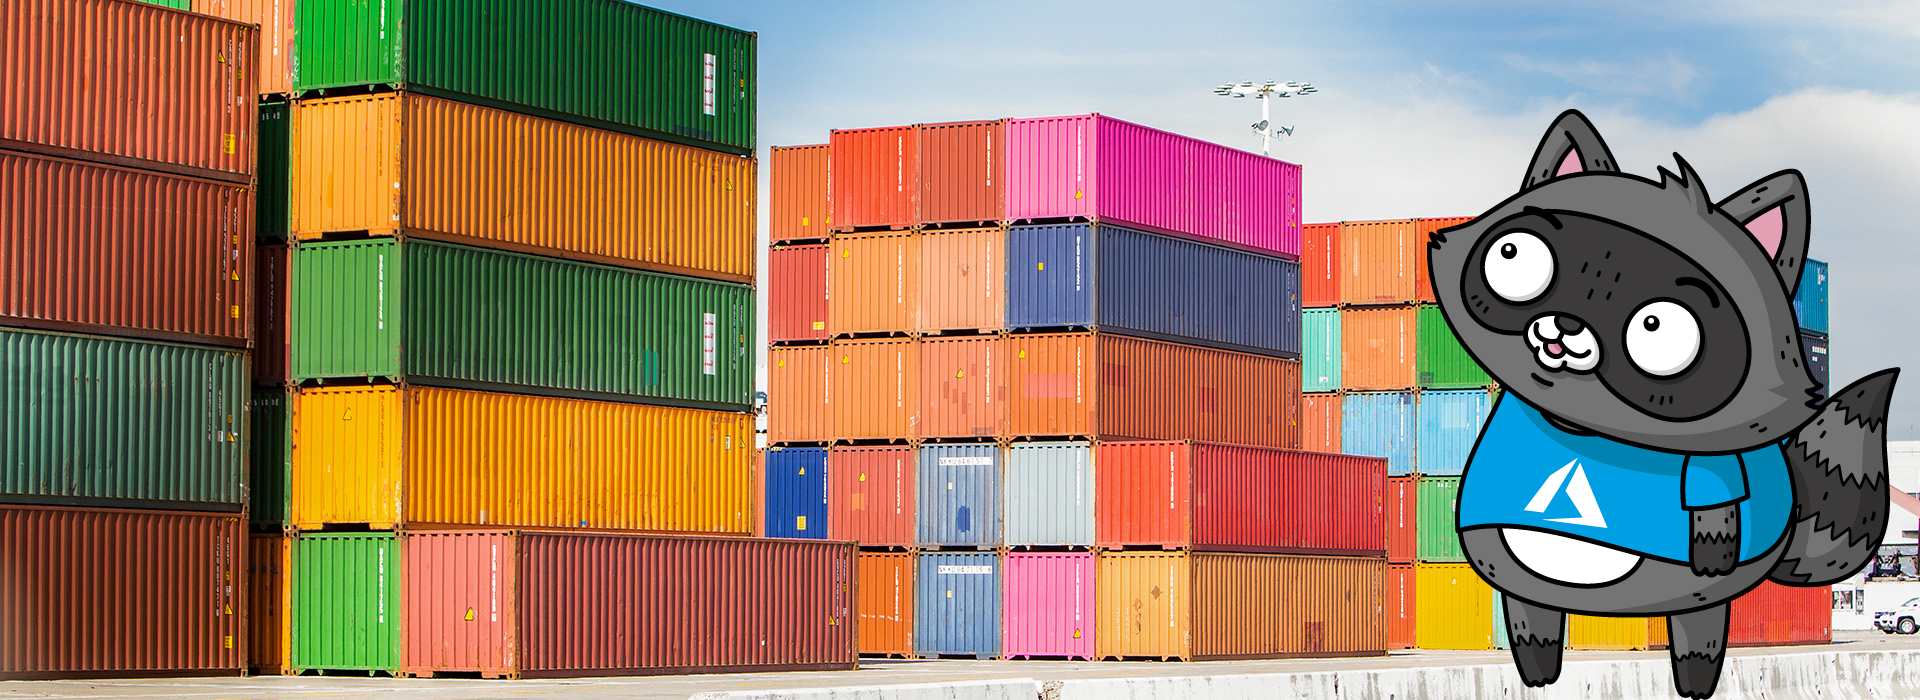 A photo of colourful shipping containers, next to a drawing of Bit the Raccoon.